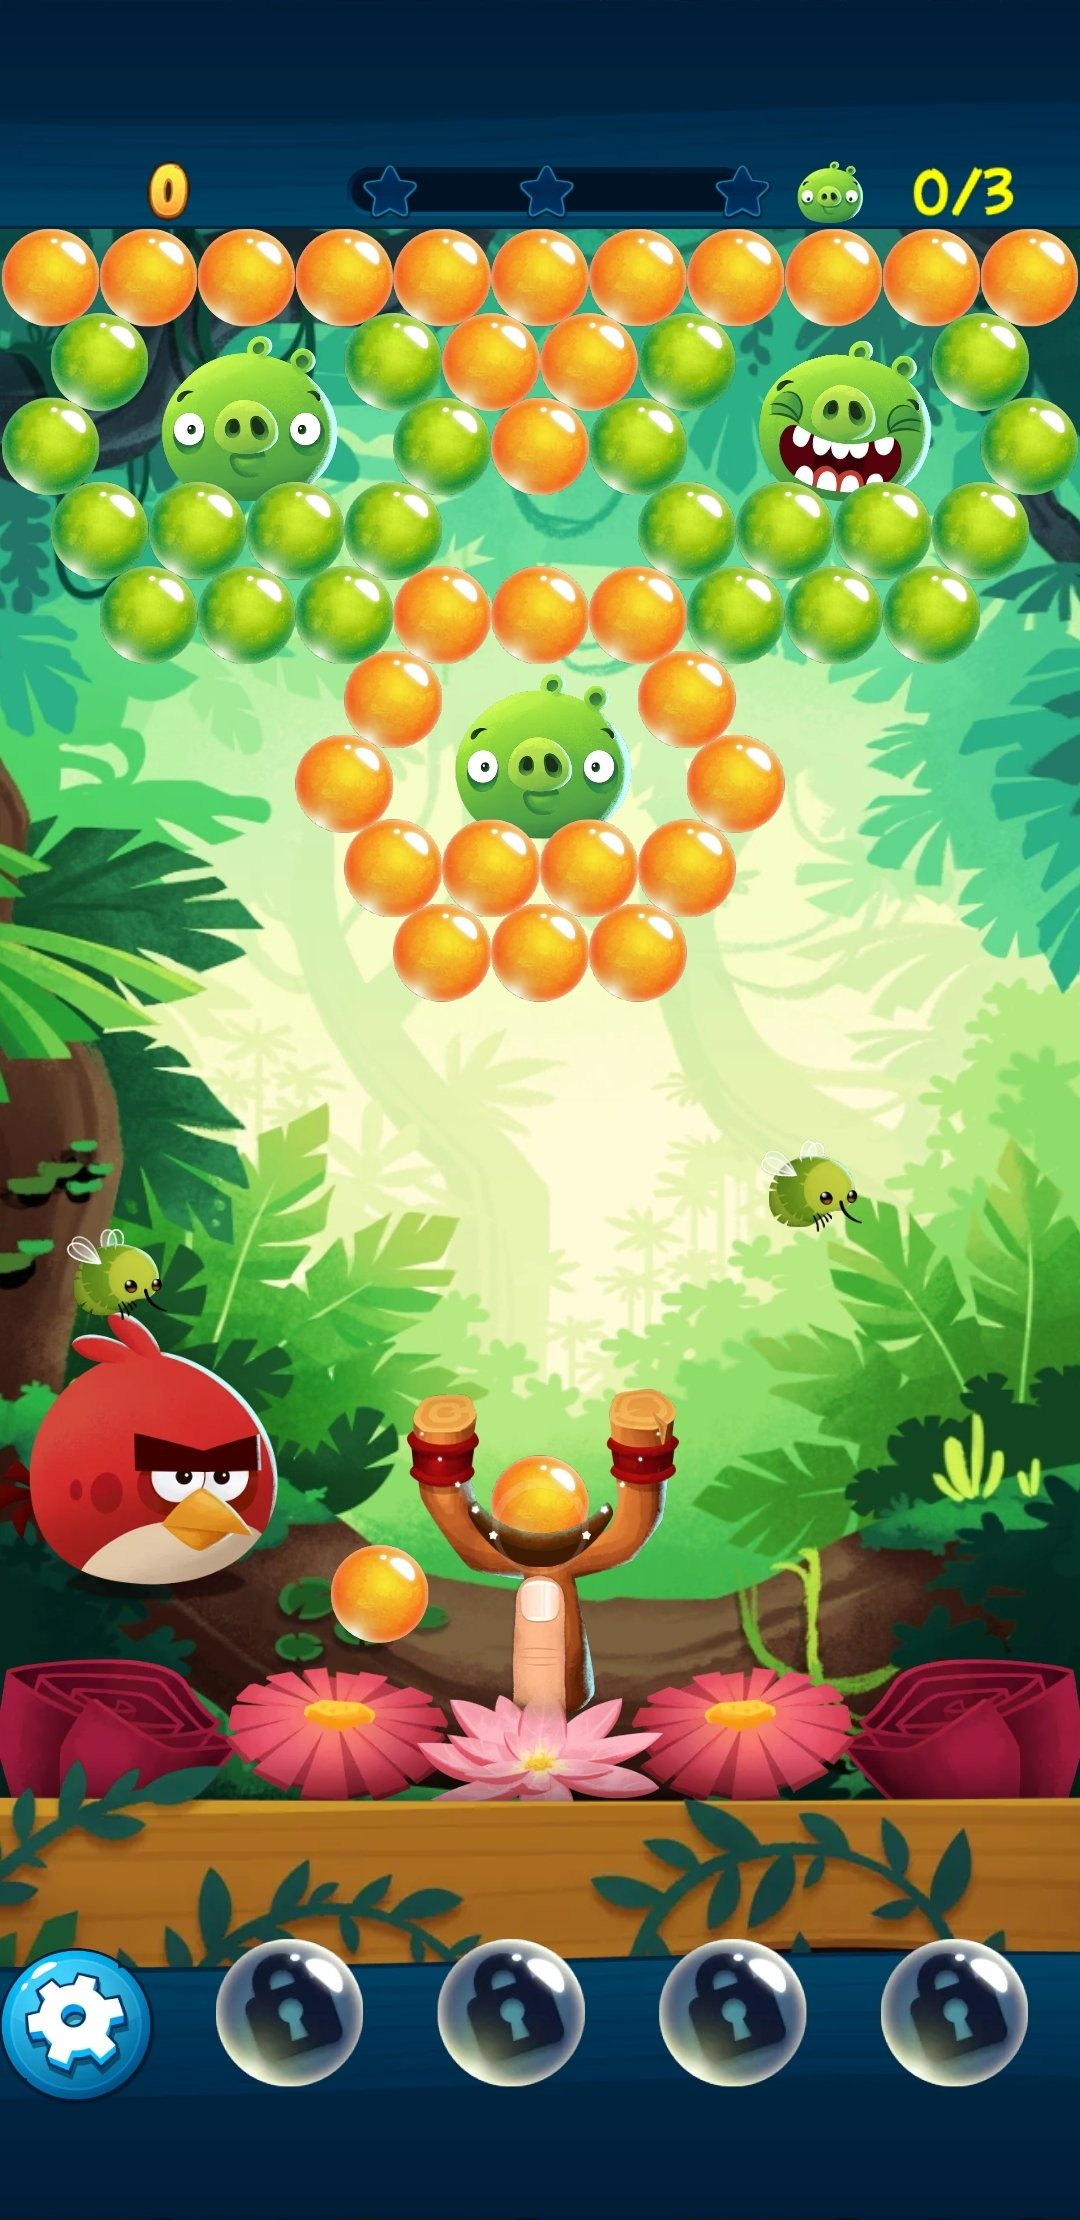 Angry Birds Stella POP! 3 64 0 - Download for Android APK Free